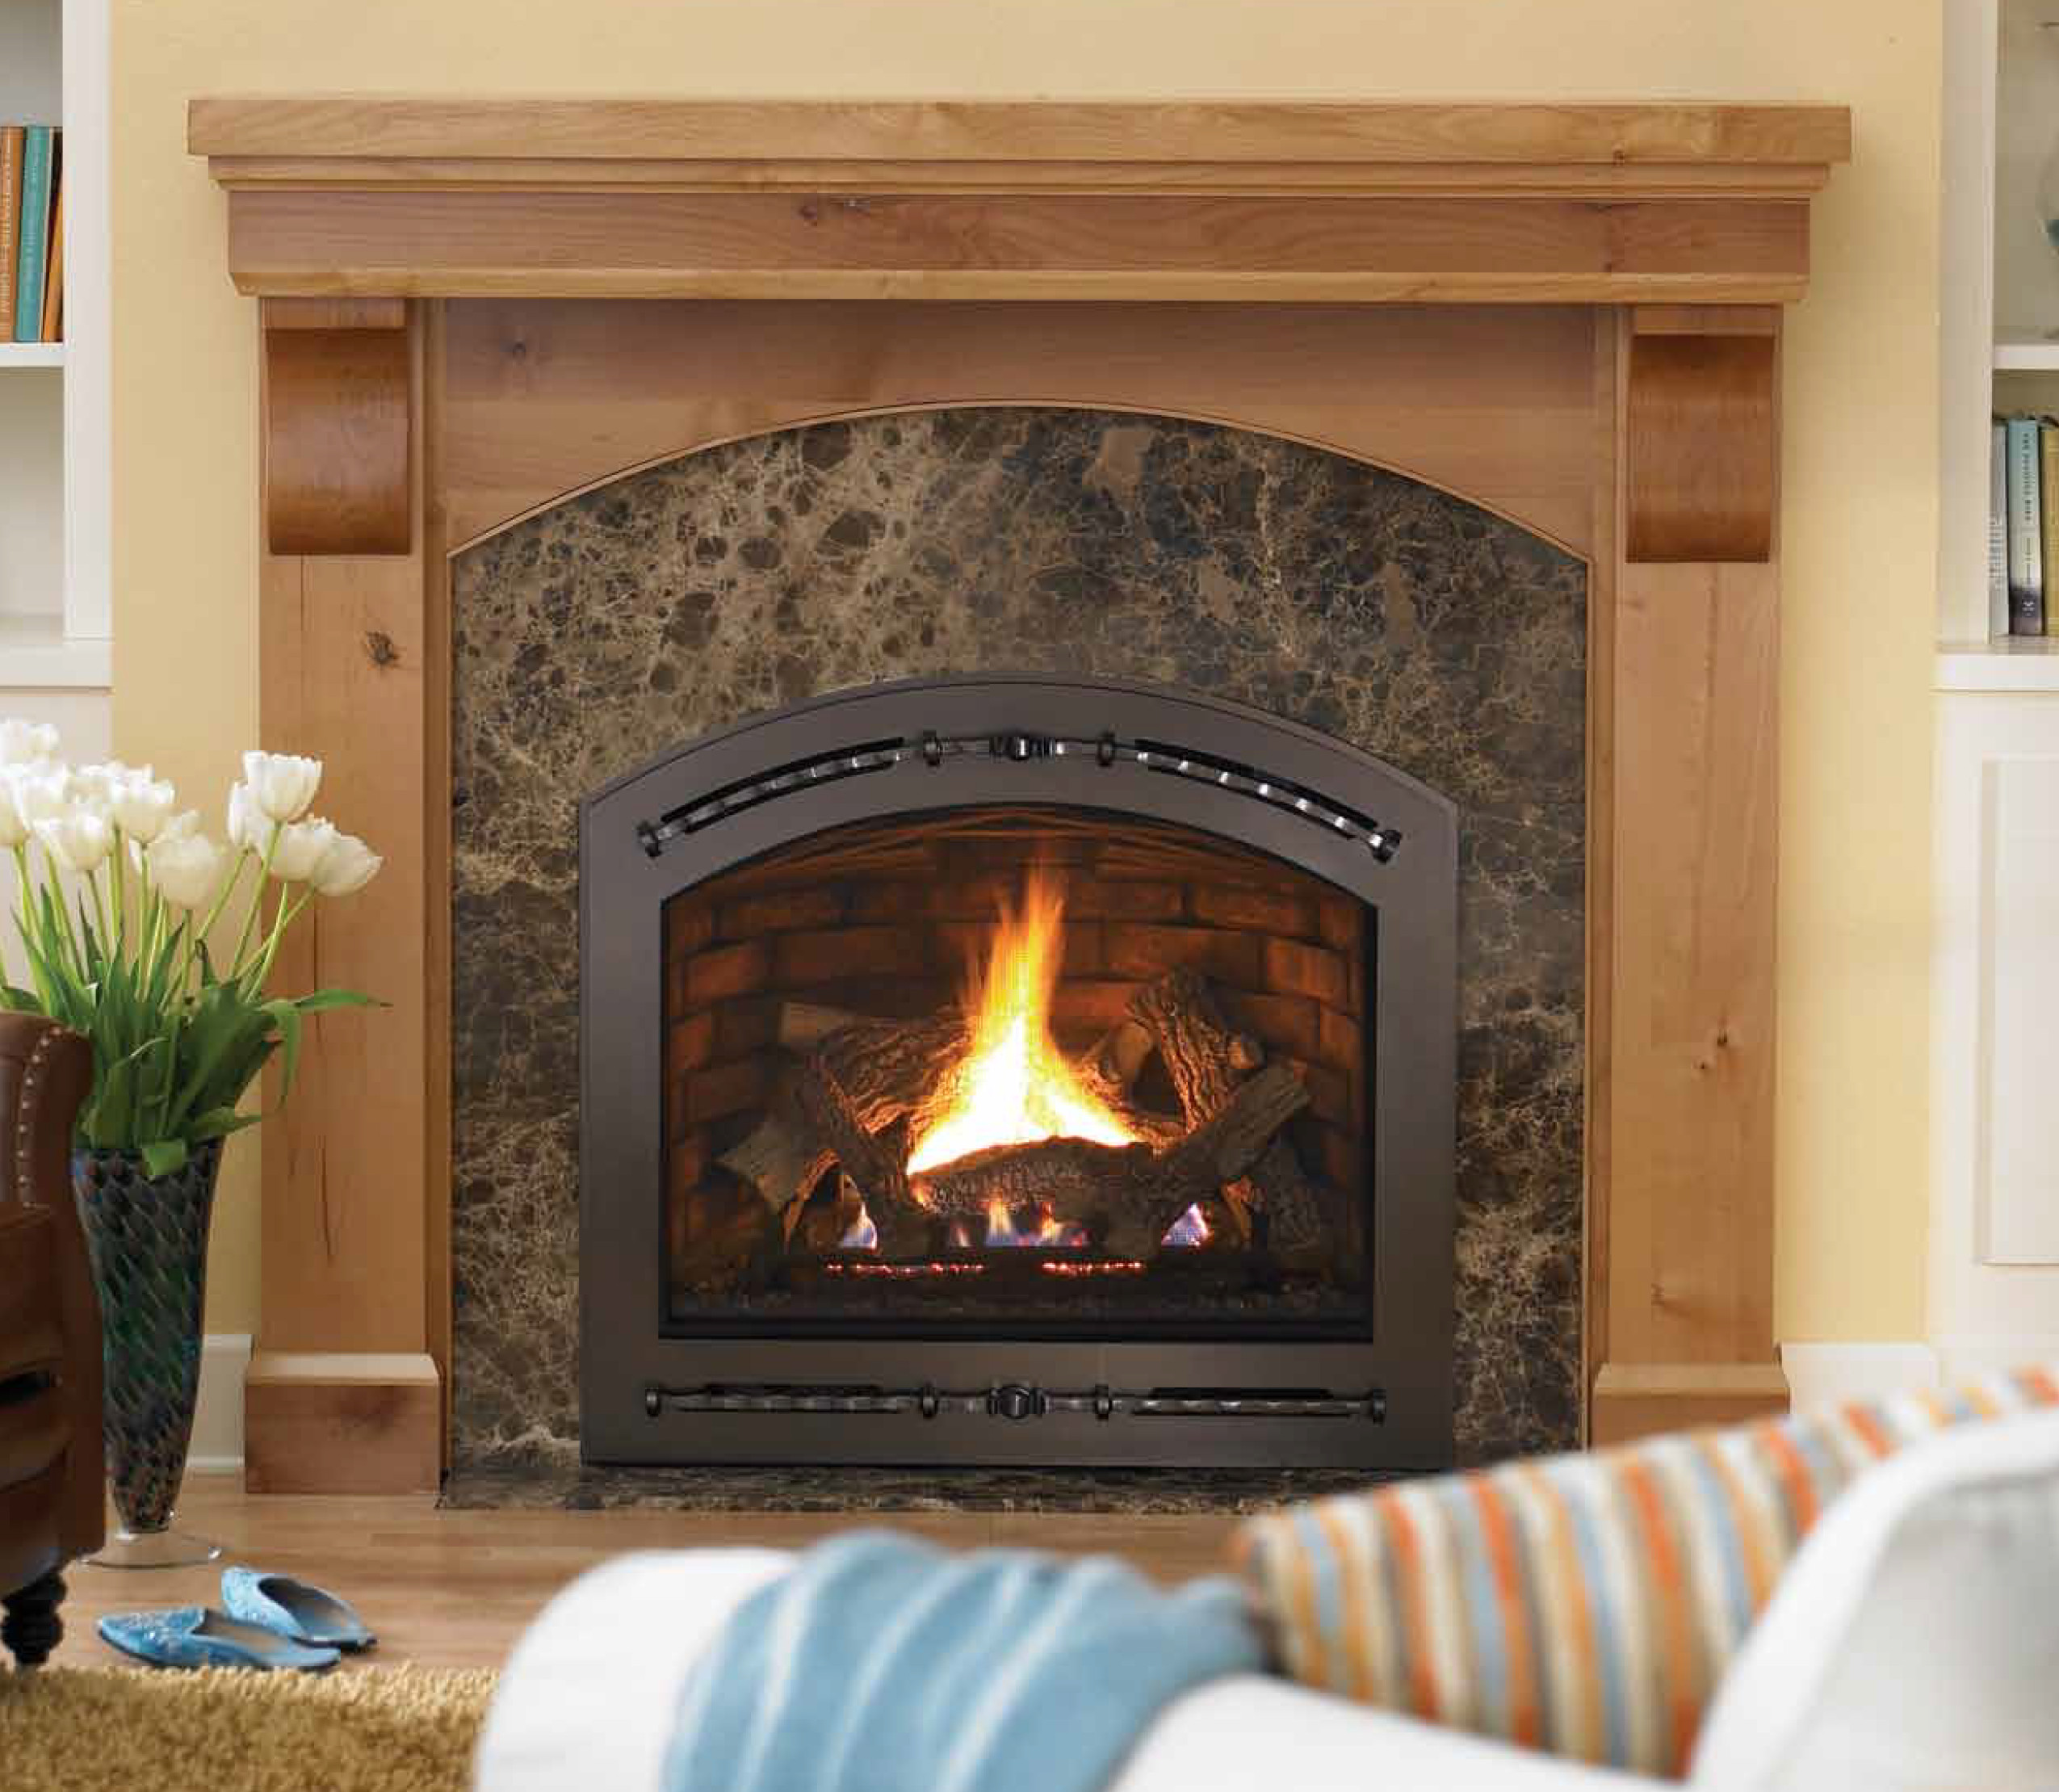 Best ideas about Direct Vent Fireplace . Save or Pin Fireplaces Now.